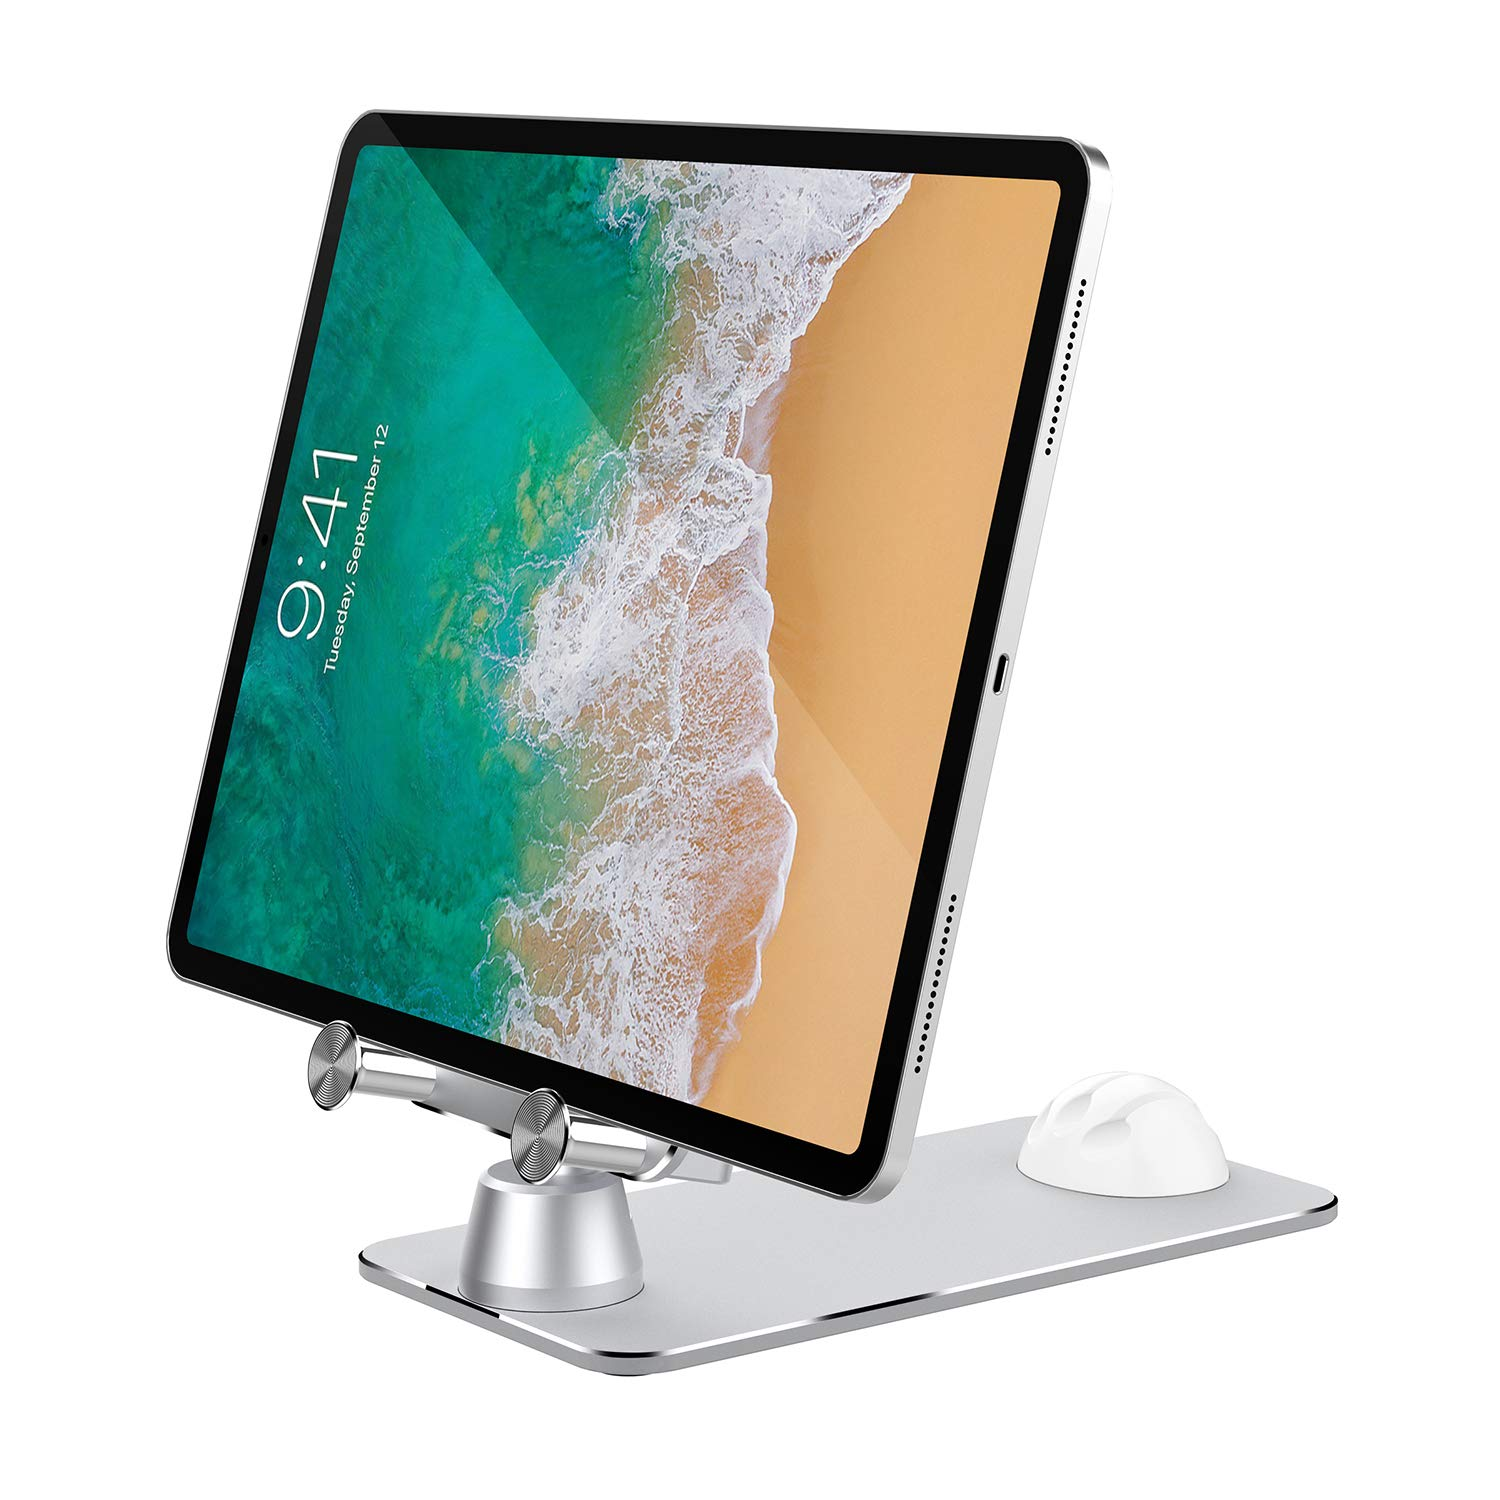 Tablet and Cellphone Stand Adjustable, VMEI Metal Desktop Stand Compatible with Tablet Such as iPad 2019 Pro, iPad Air Mini, Kindle, Nexus, E-Reader, Switch,iPhone and All Smart Phone(Silver)